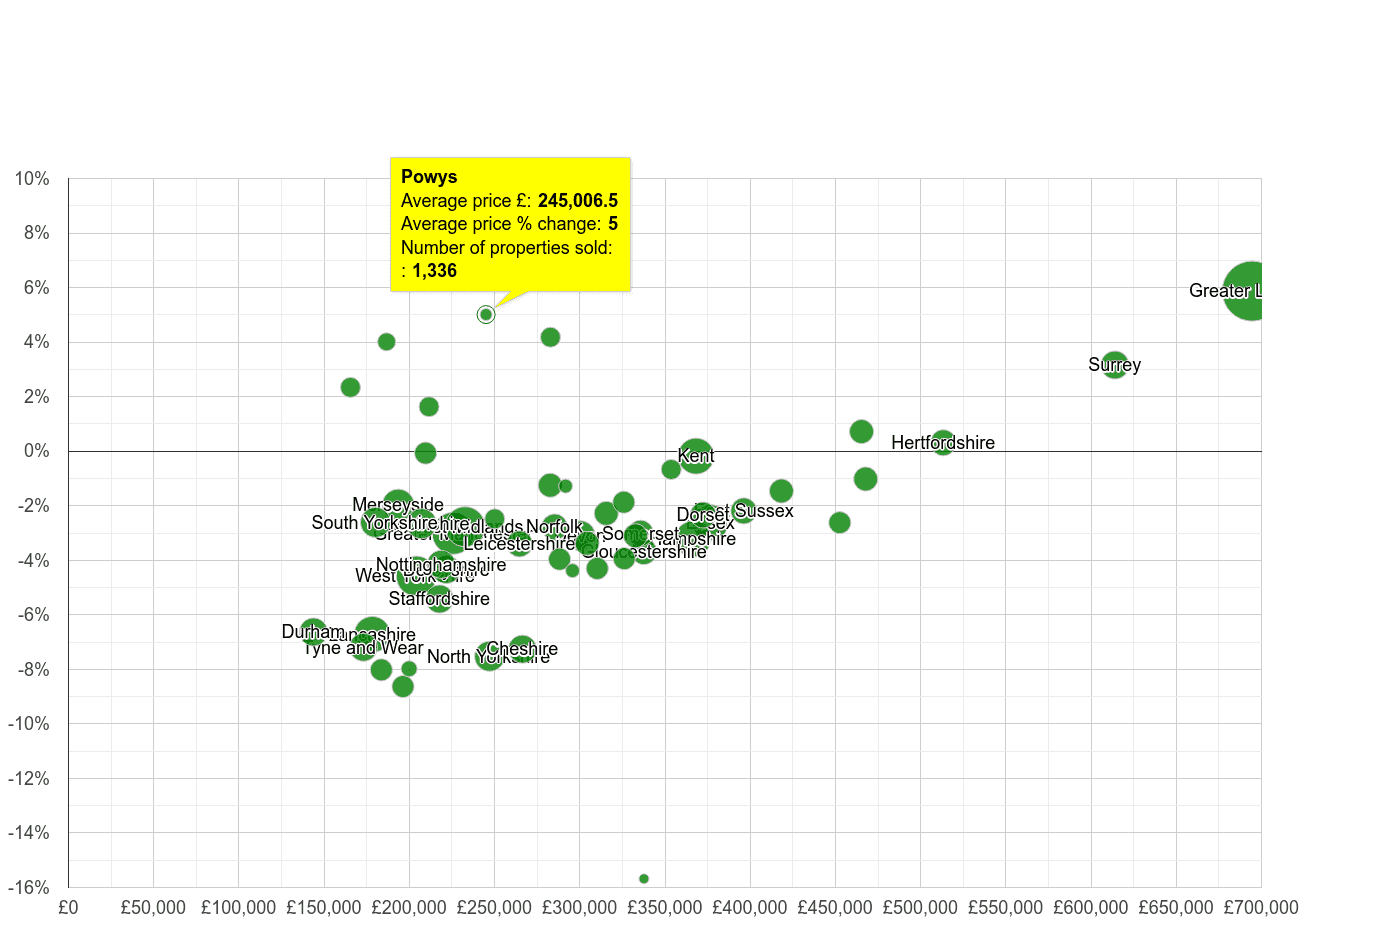 Powys house prices compared to other counties